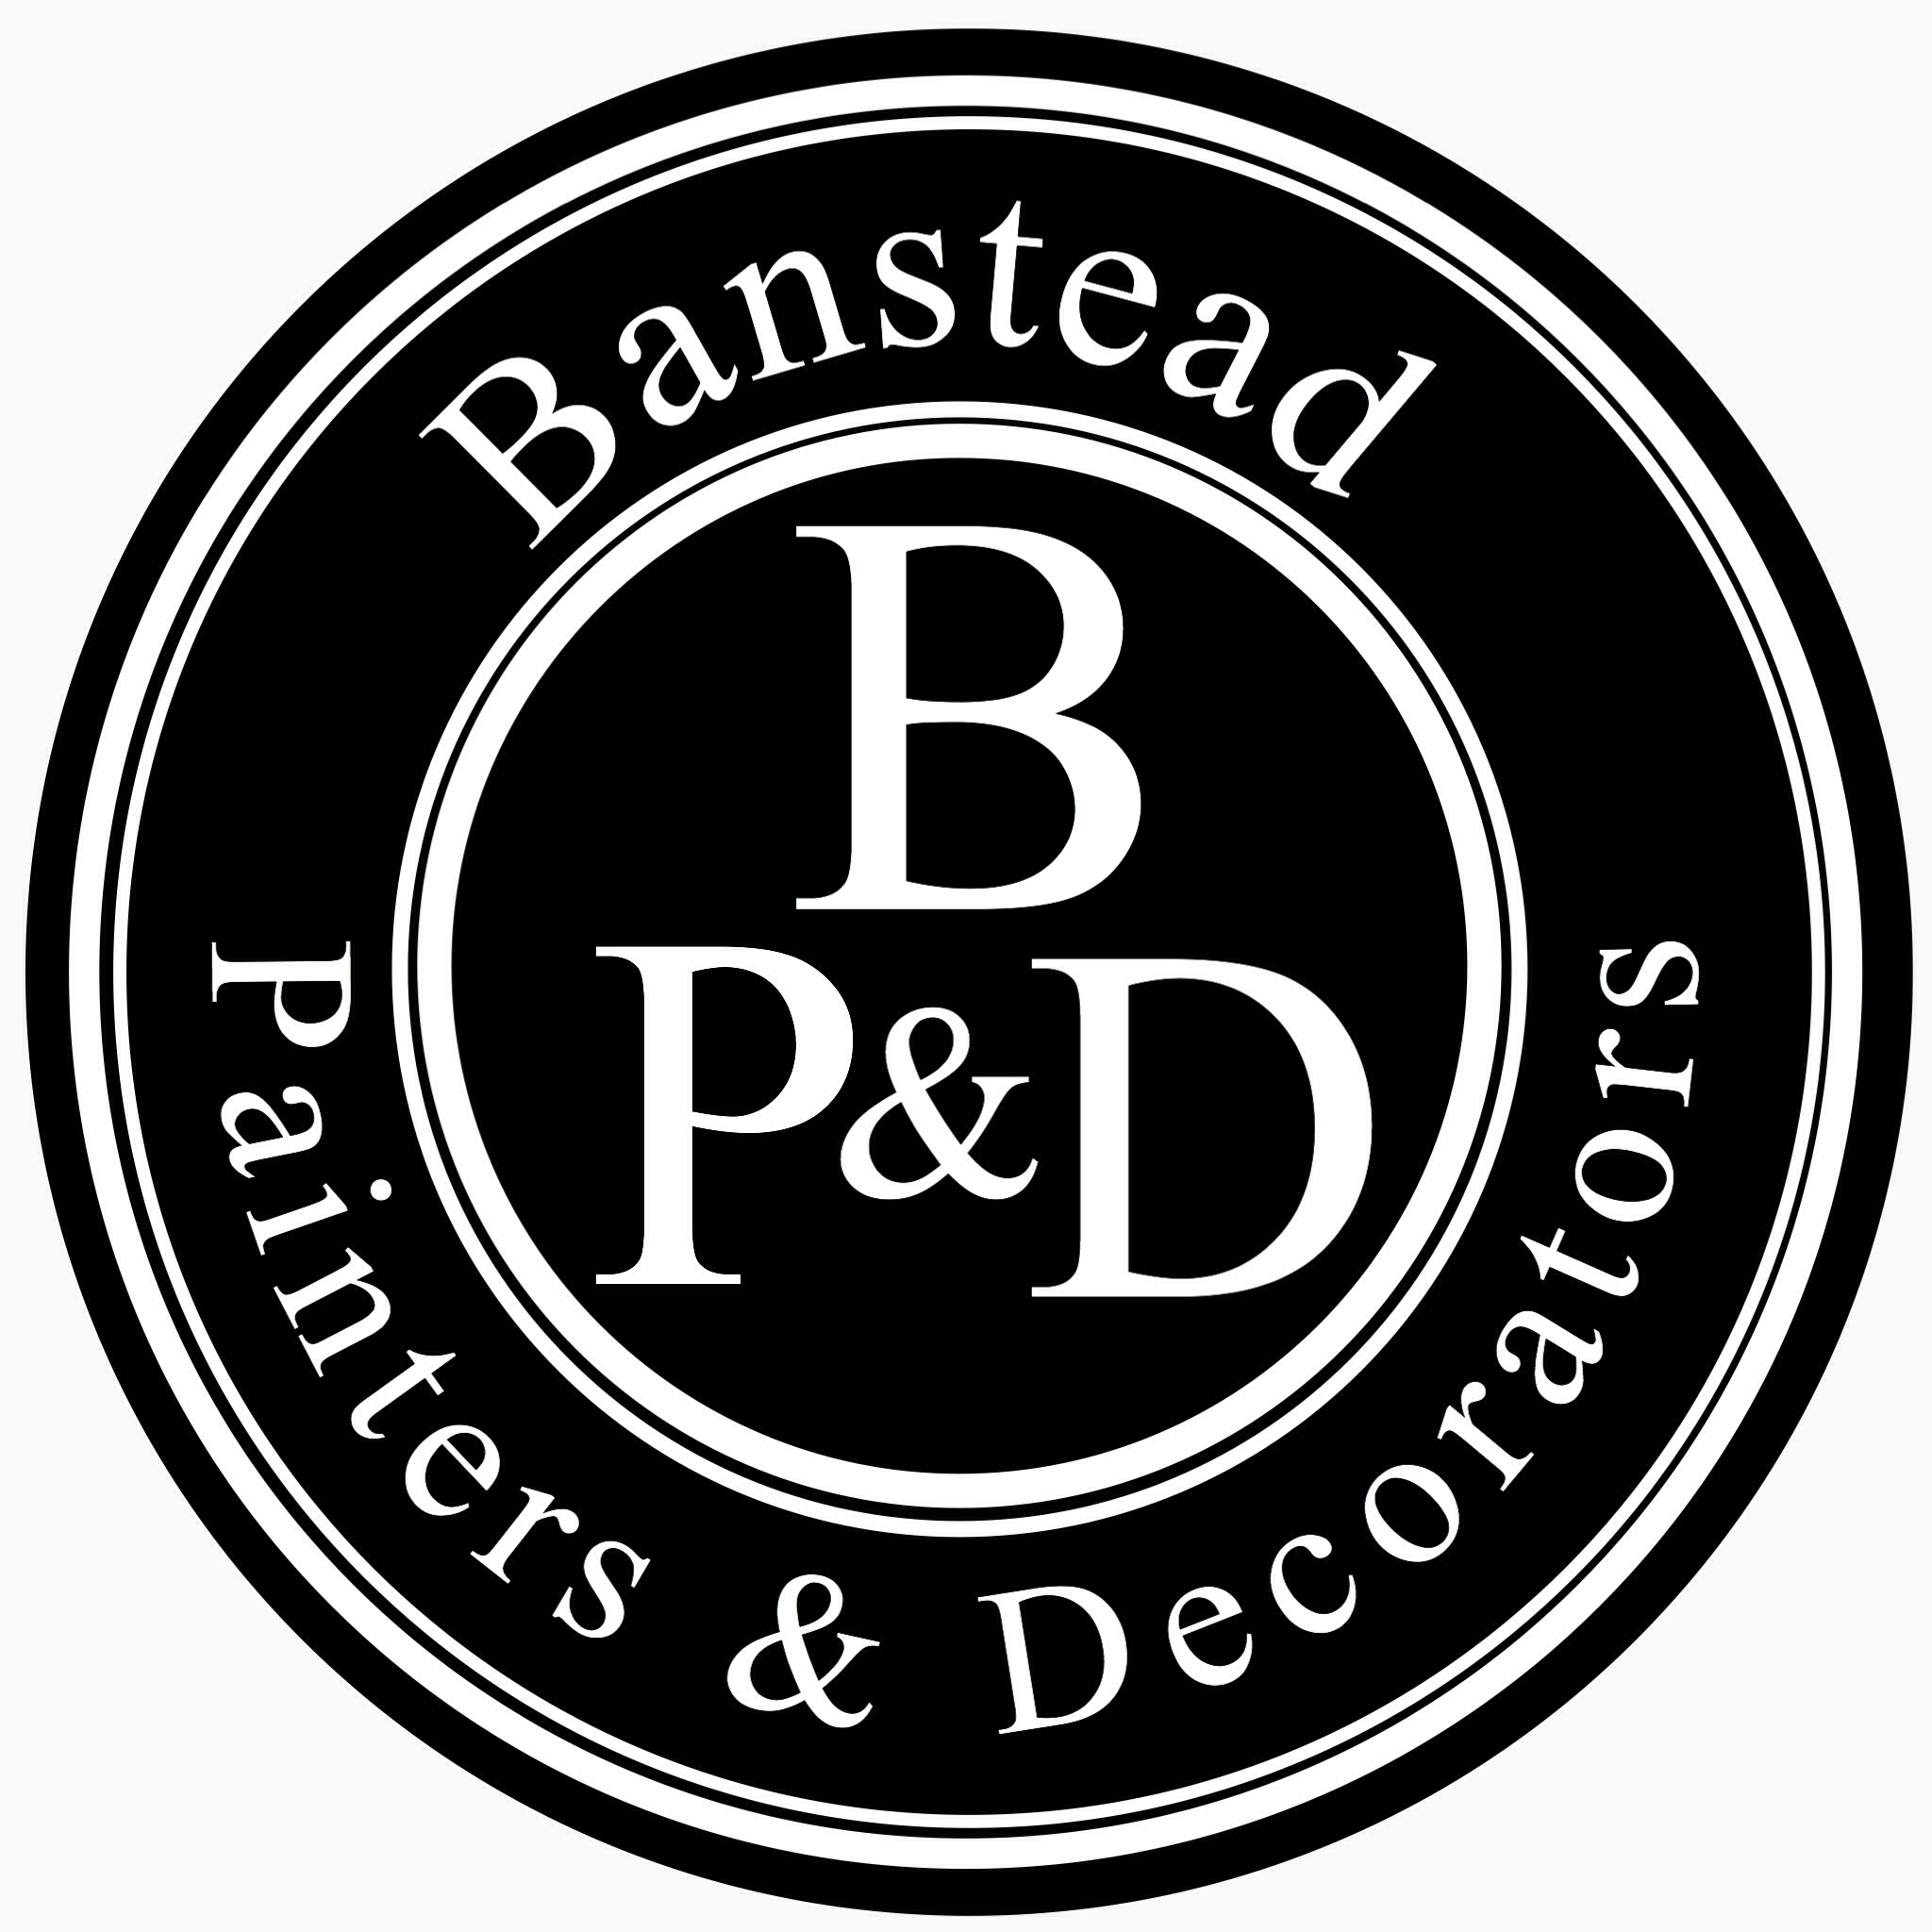 Banstead Painters & Decorators